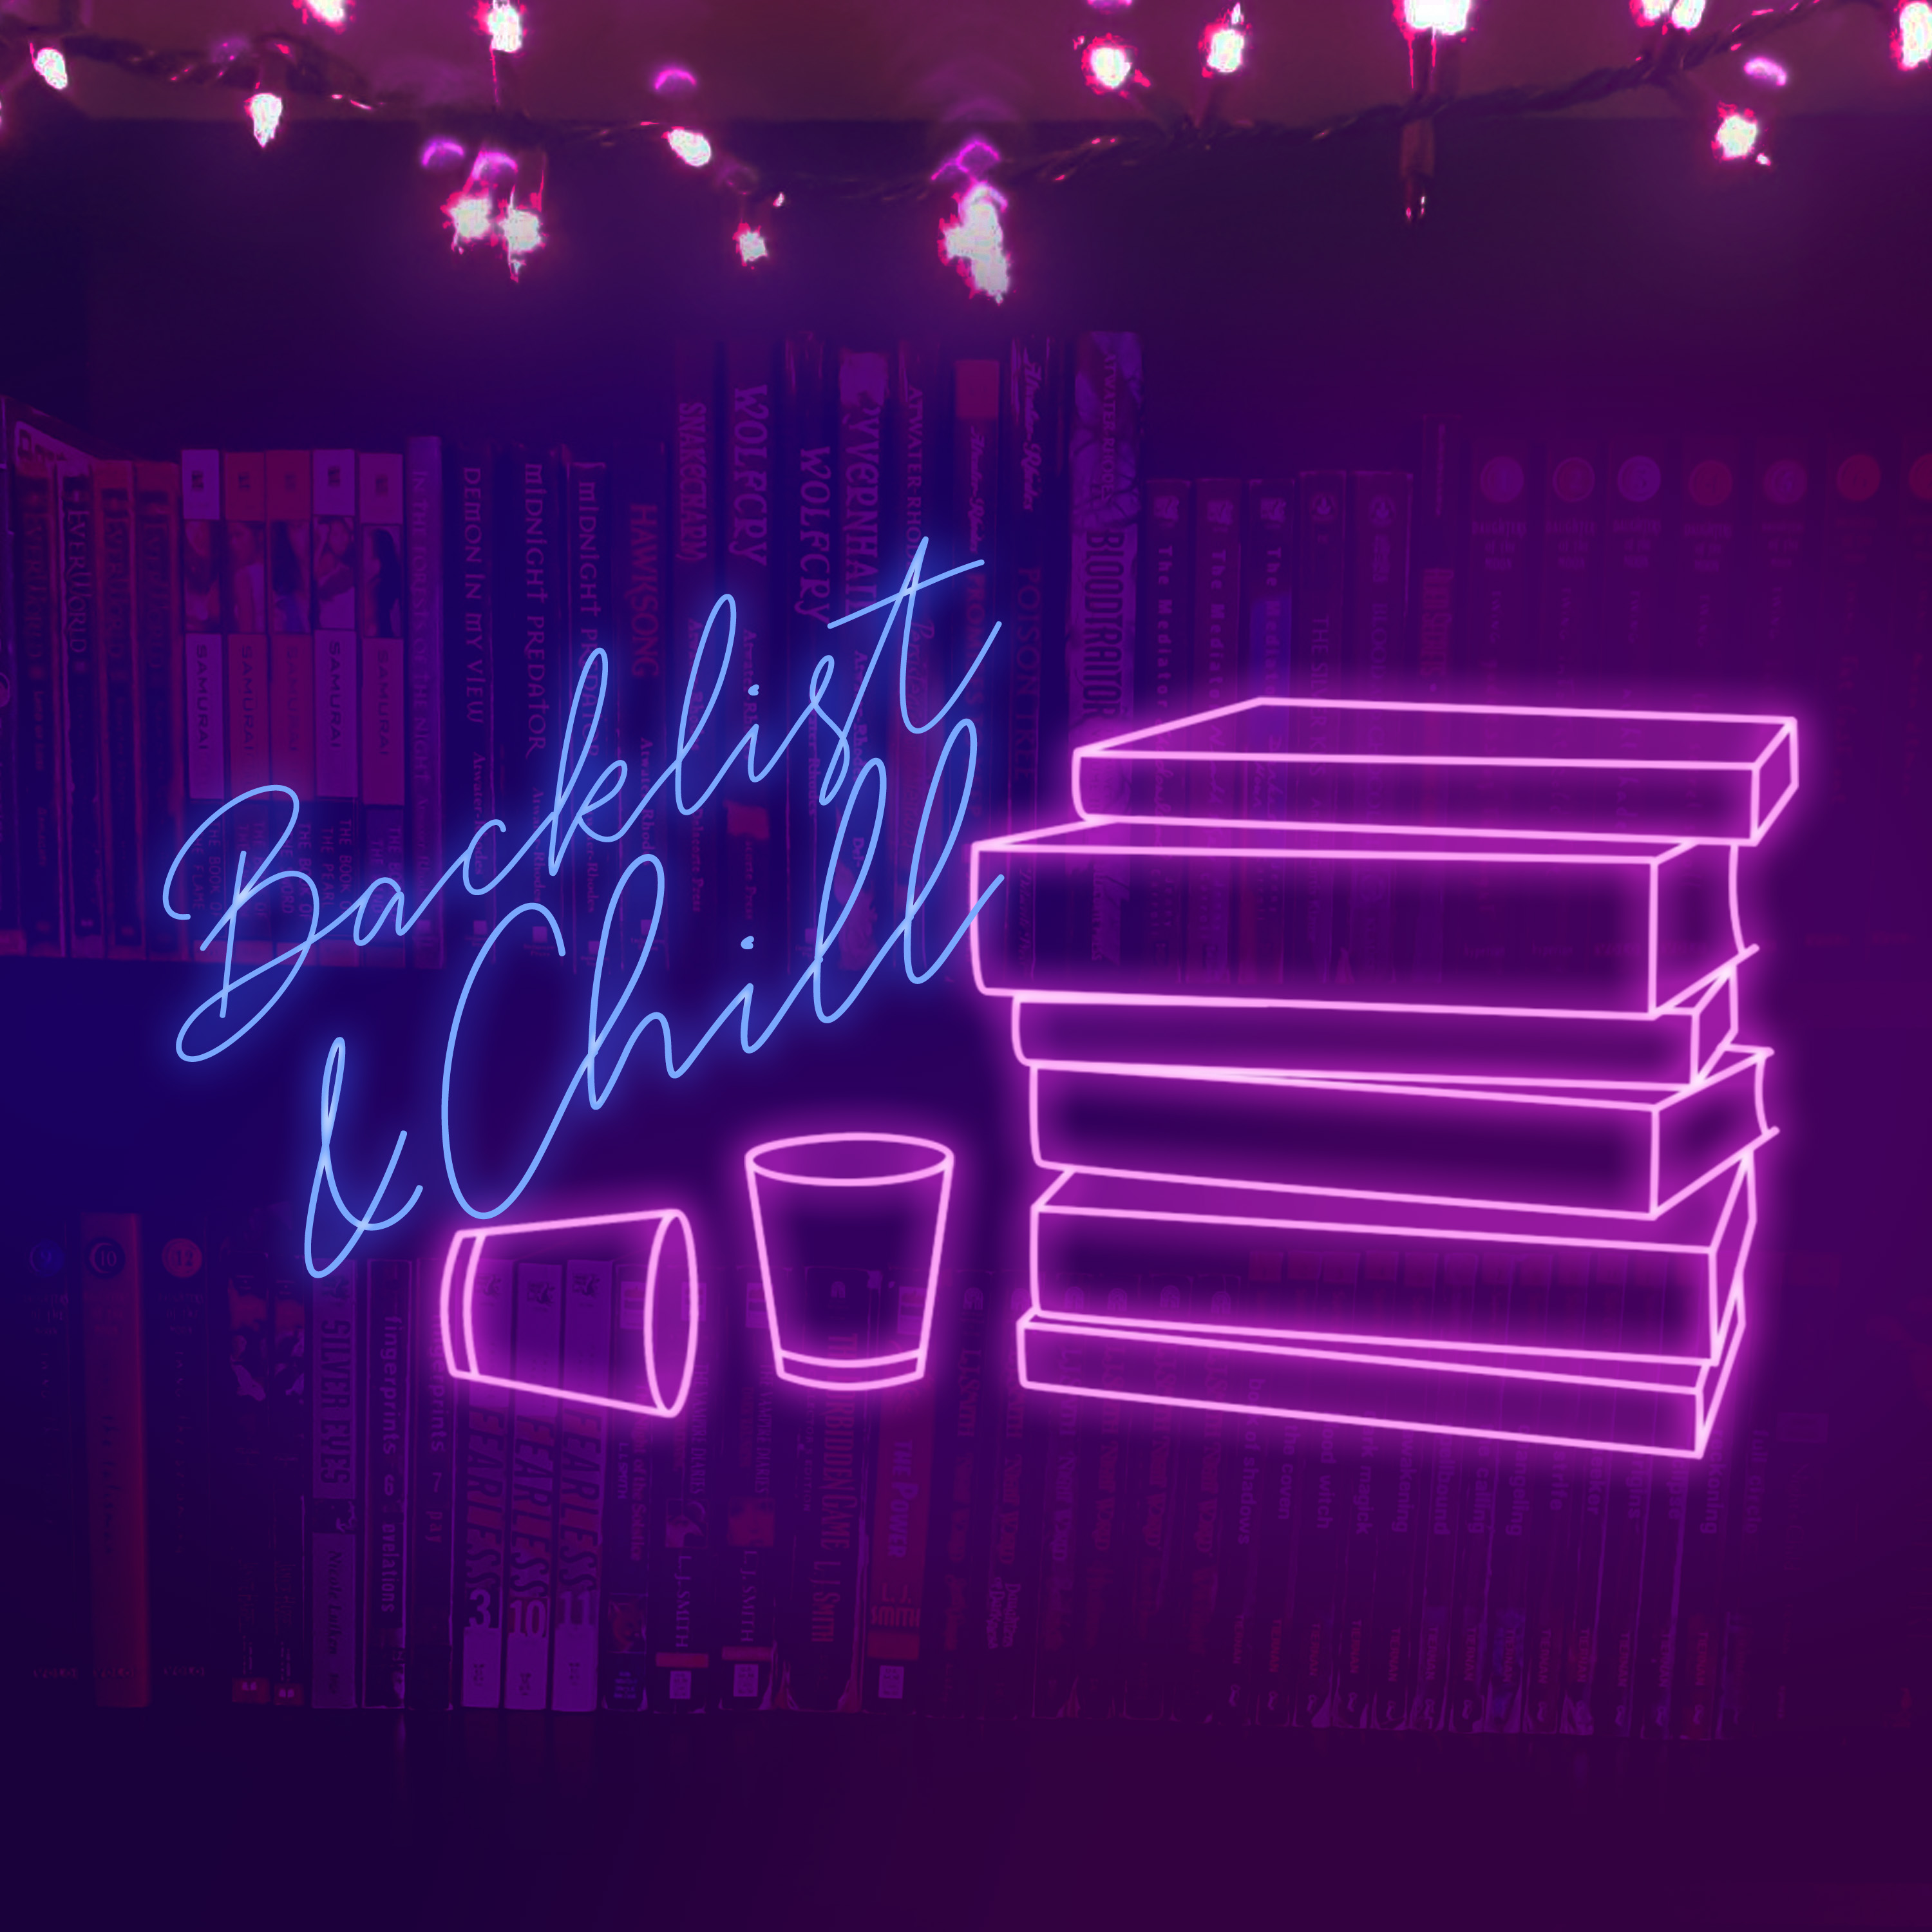 Backlist and Chill